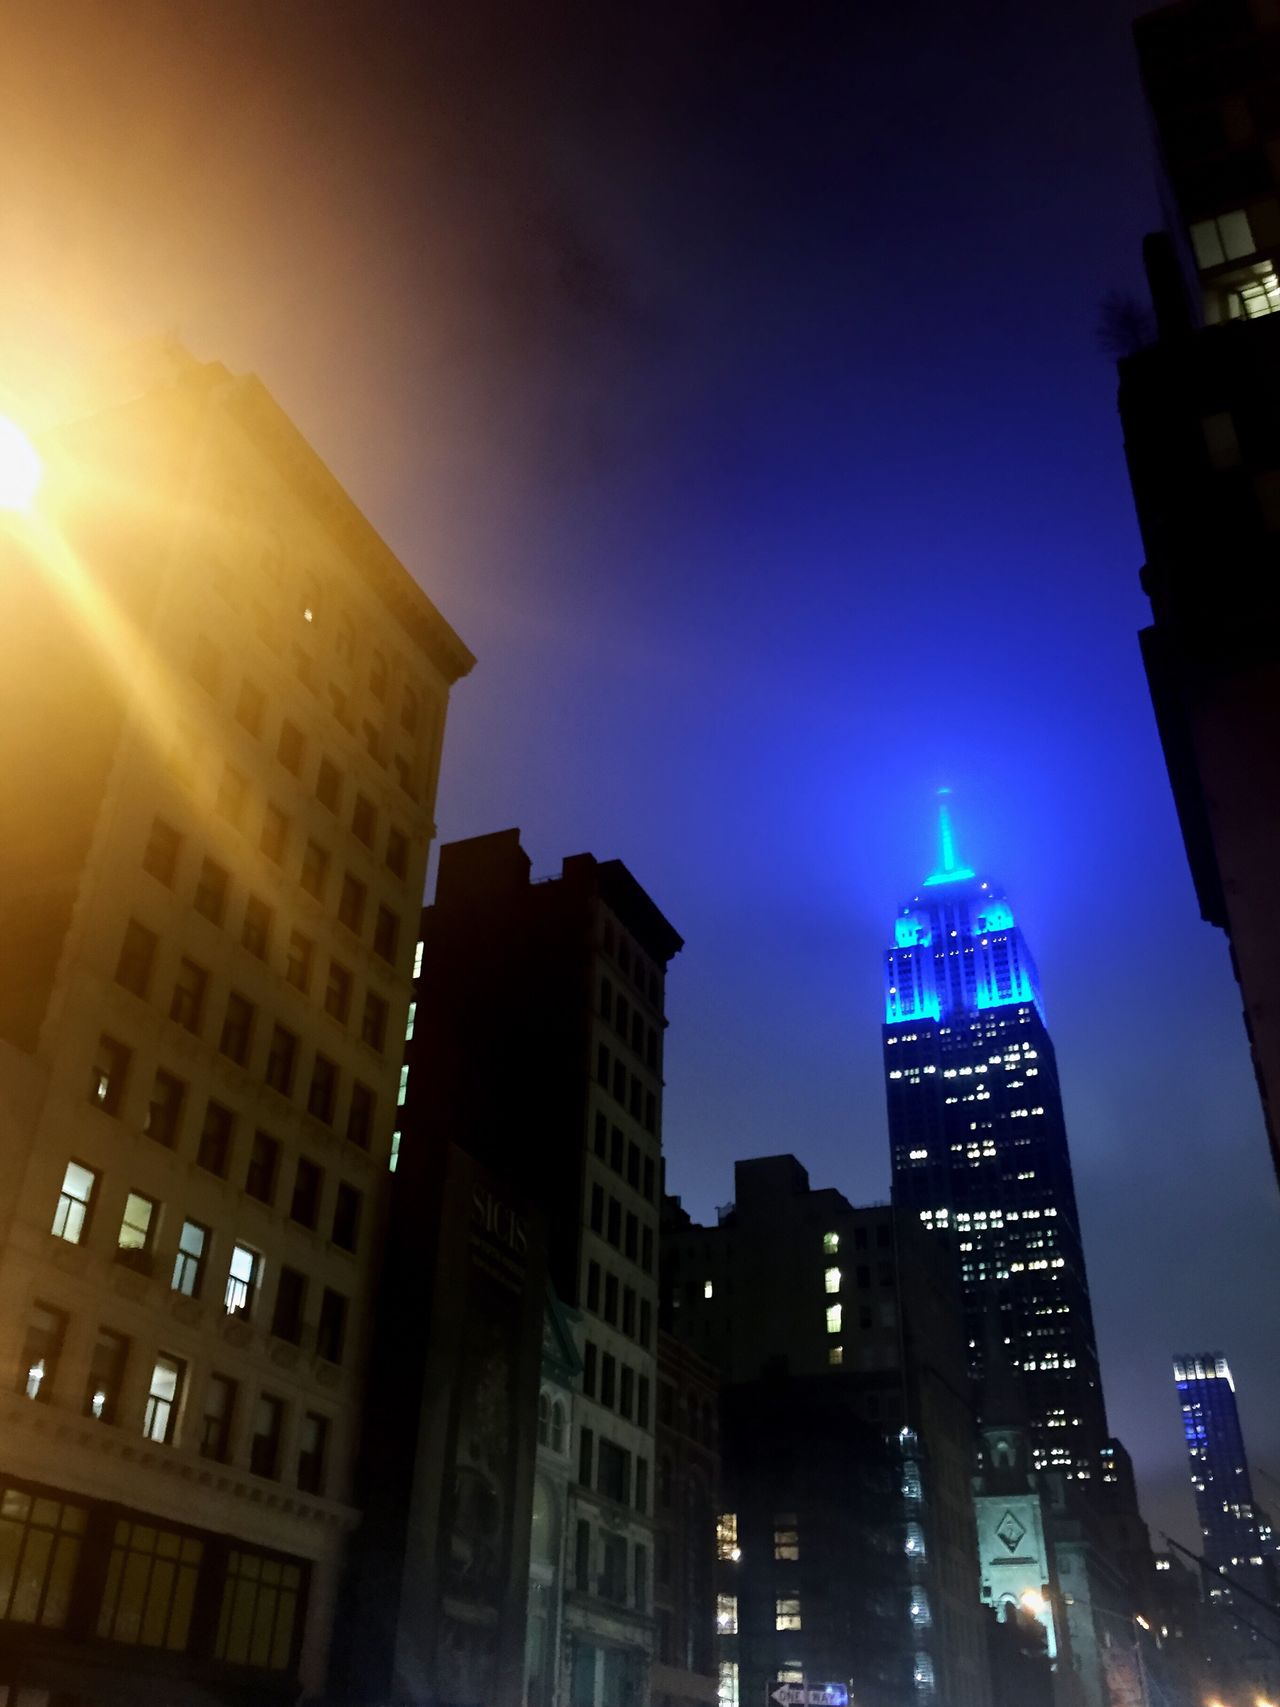 Empire State Building lit up at night. Building Exterior City Illuminated Skyscraper Night Sky Outdoors Cityscape Downtown District Low Angle View Architecture No People Blue Lighting Yellow Lighting Blue Yellow Street Built Structure Urban Glow Glowing Fog Downtown Calm Darkness